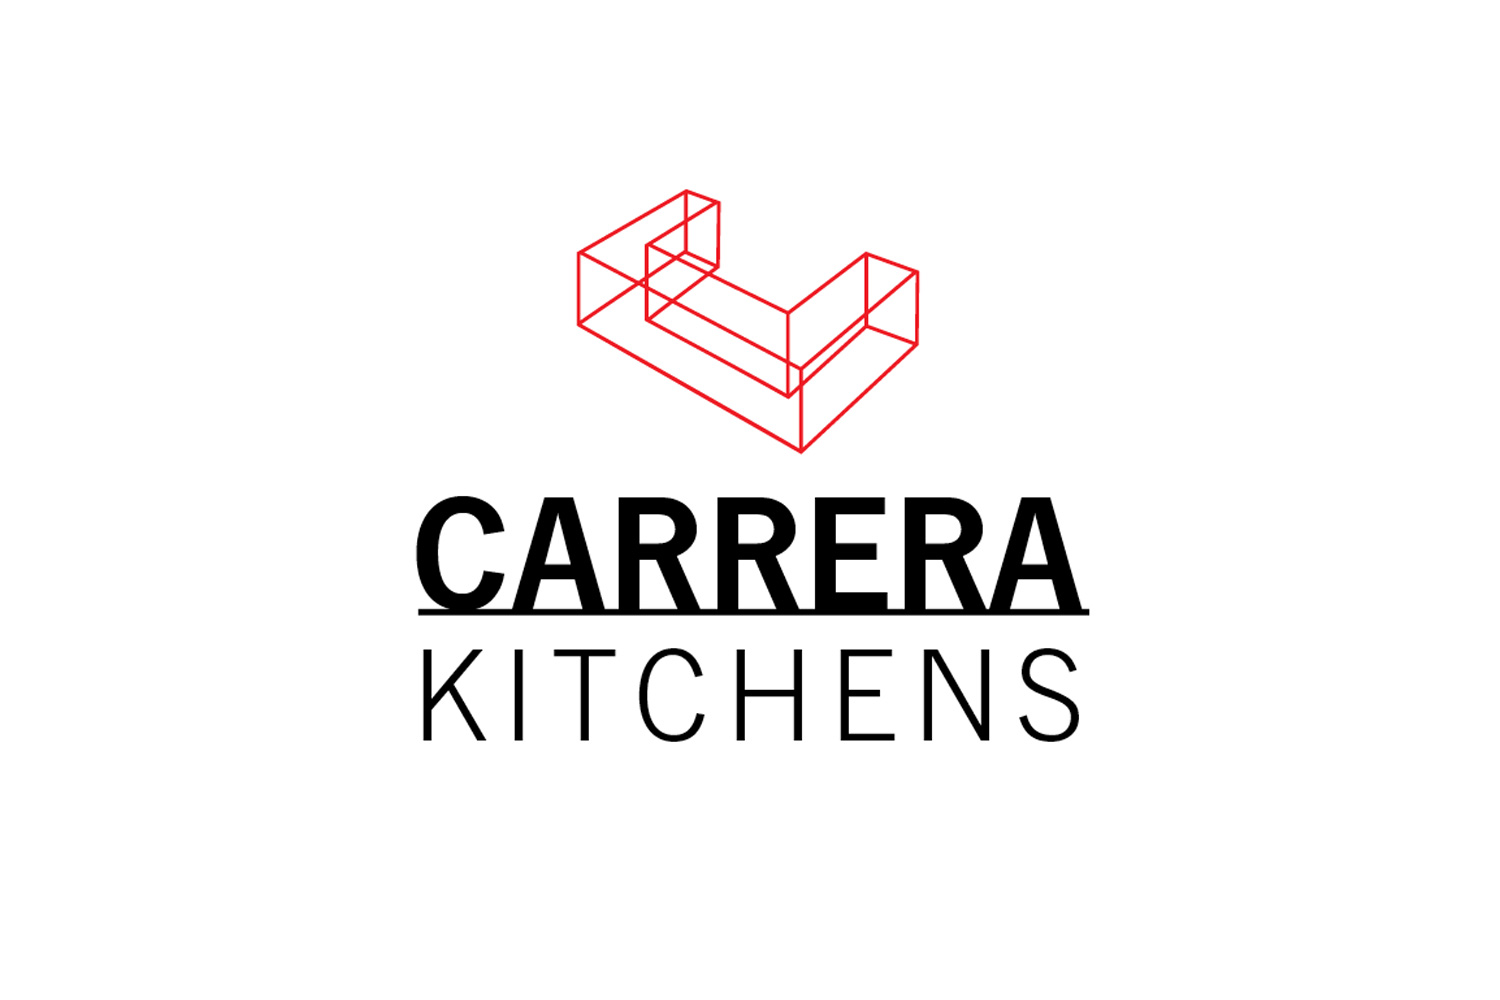 Carrera Kitchens